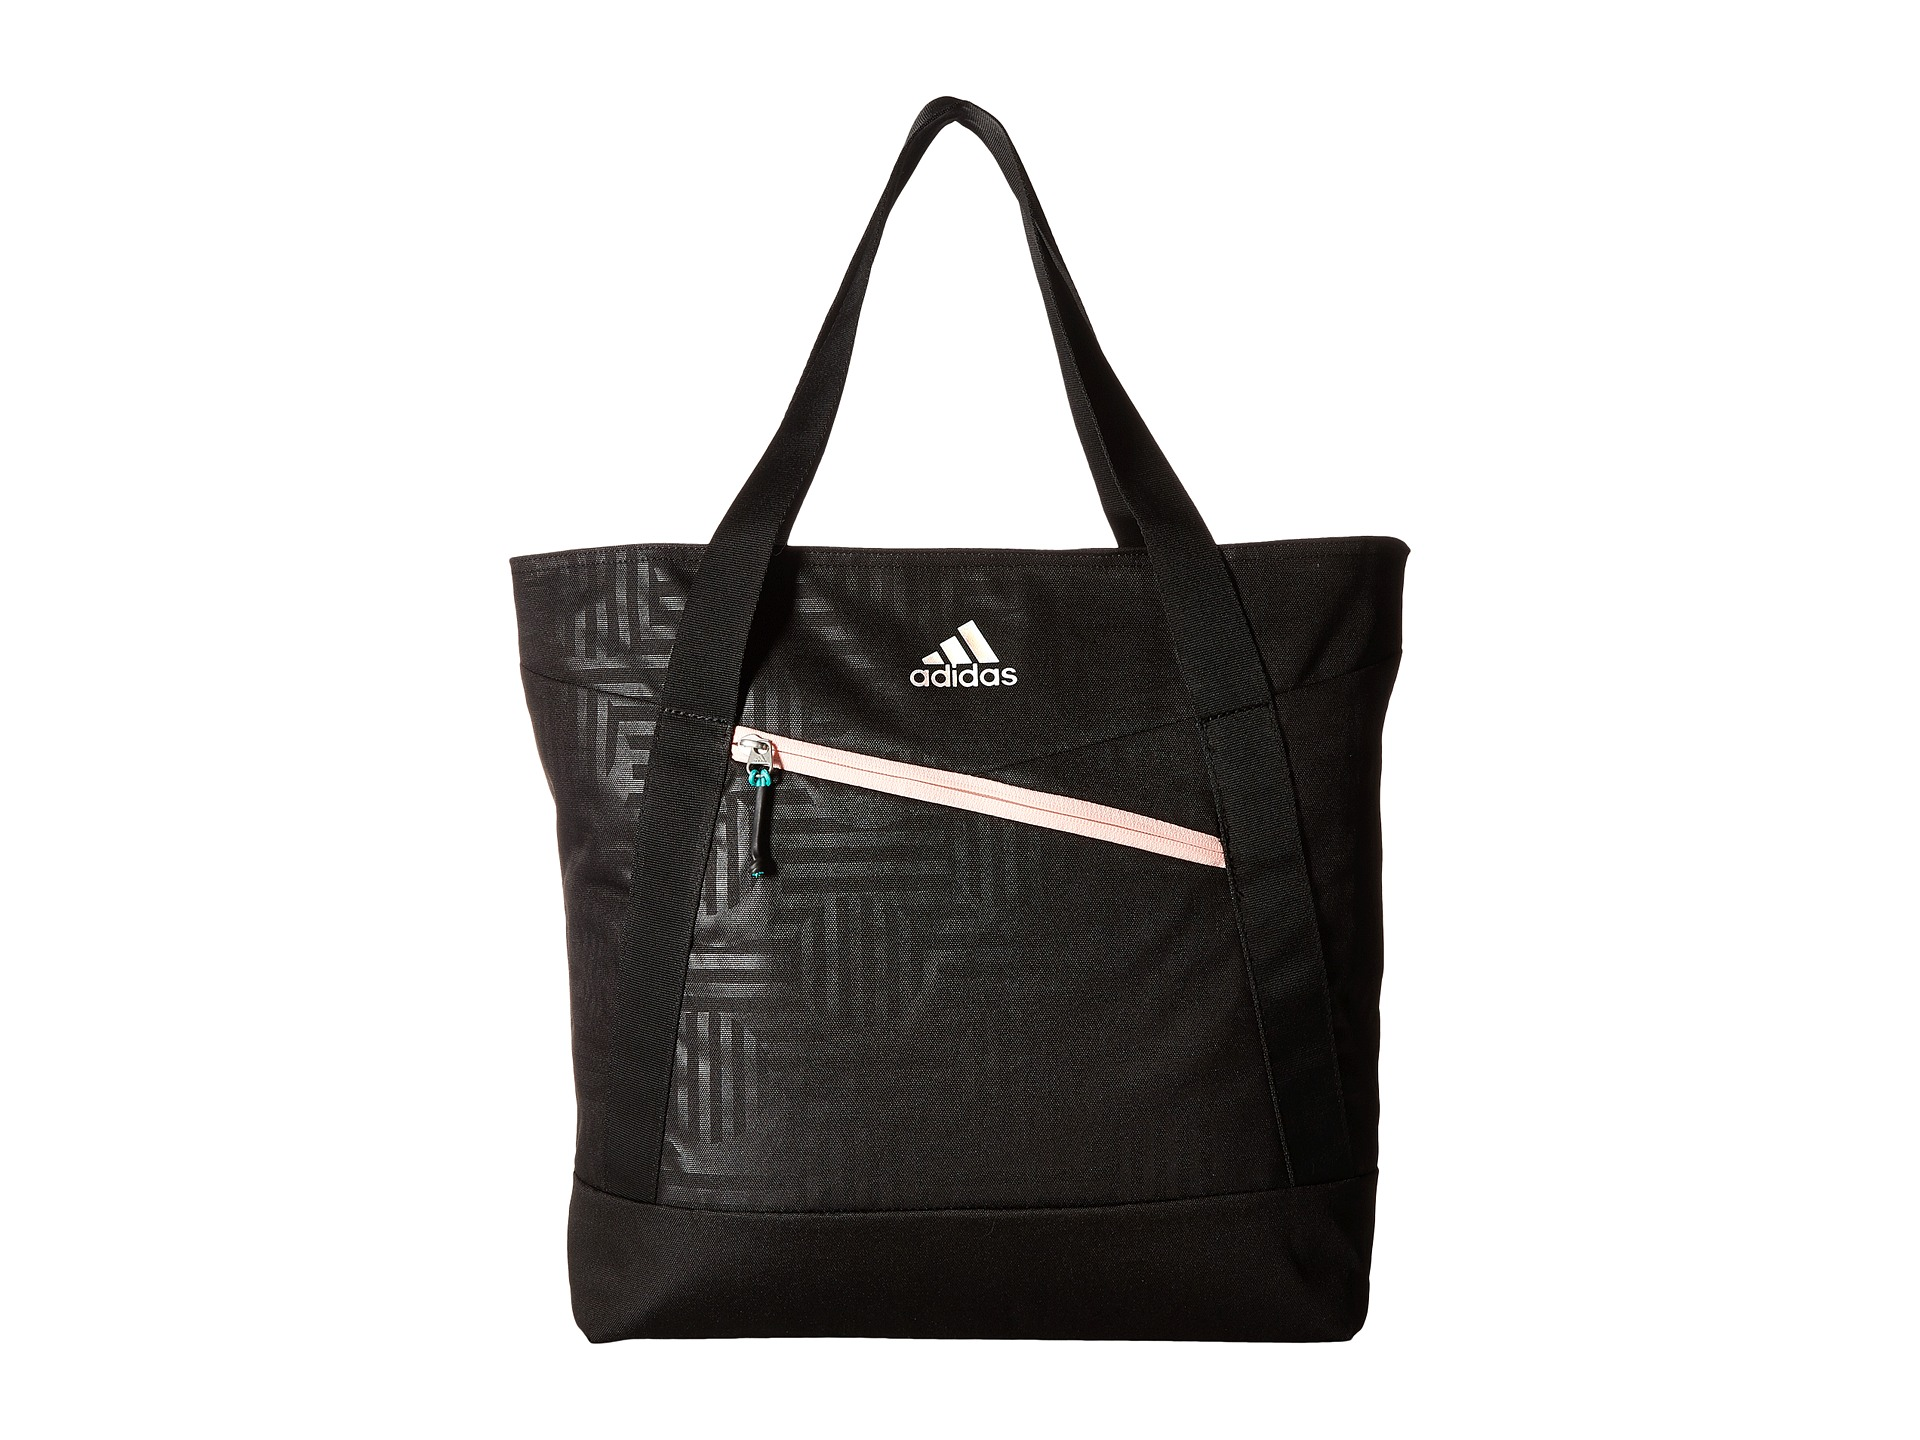 adidas Squad III Tote at 6pm.com